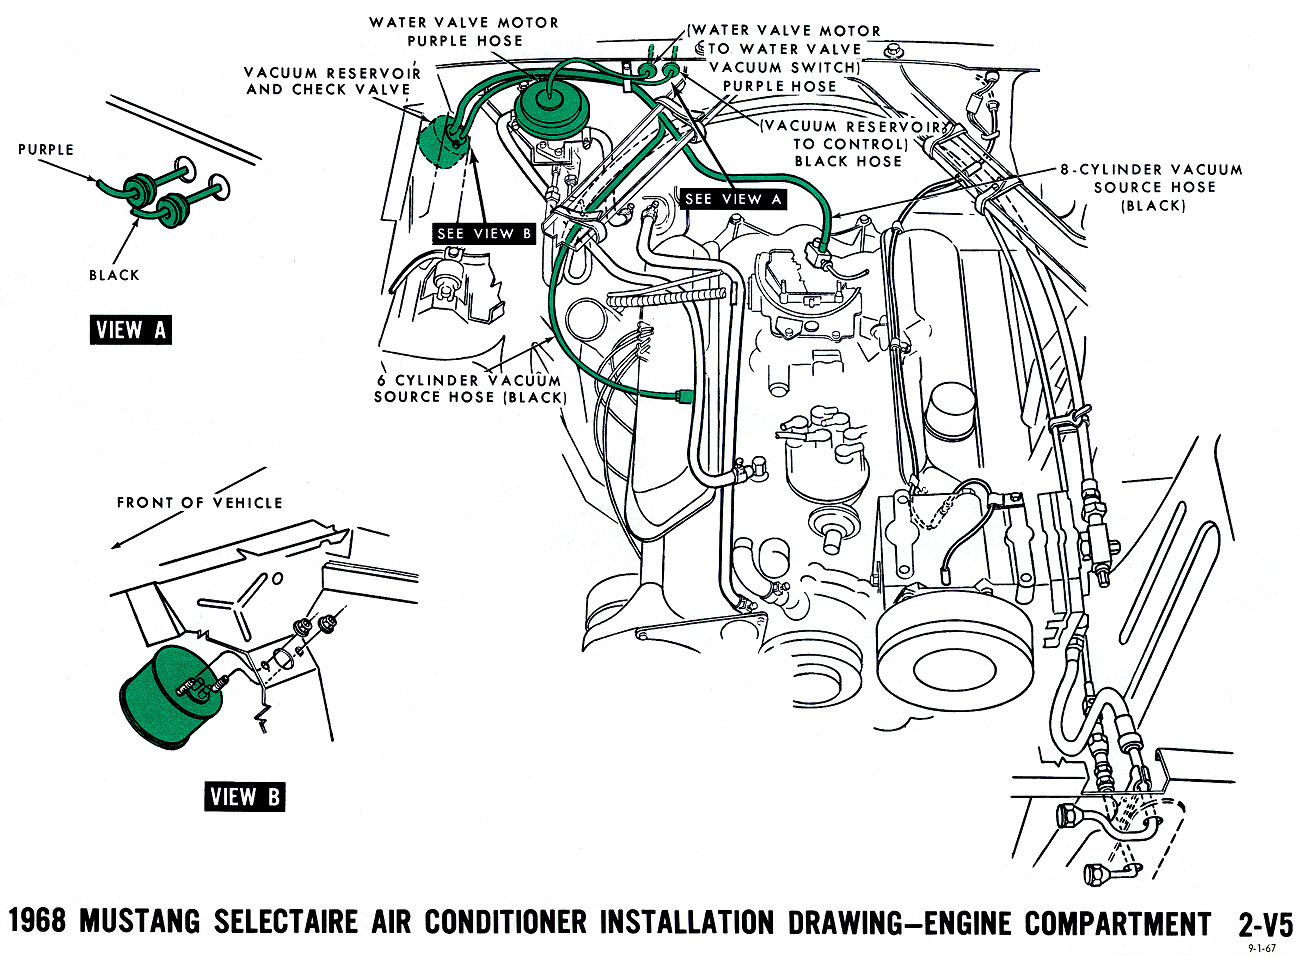 1968 Mustang Vacuum Diagrams   Evolving Software